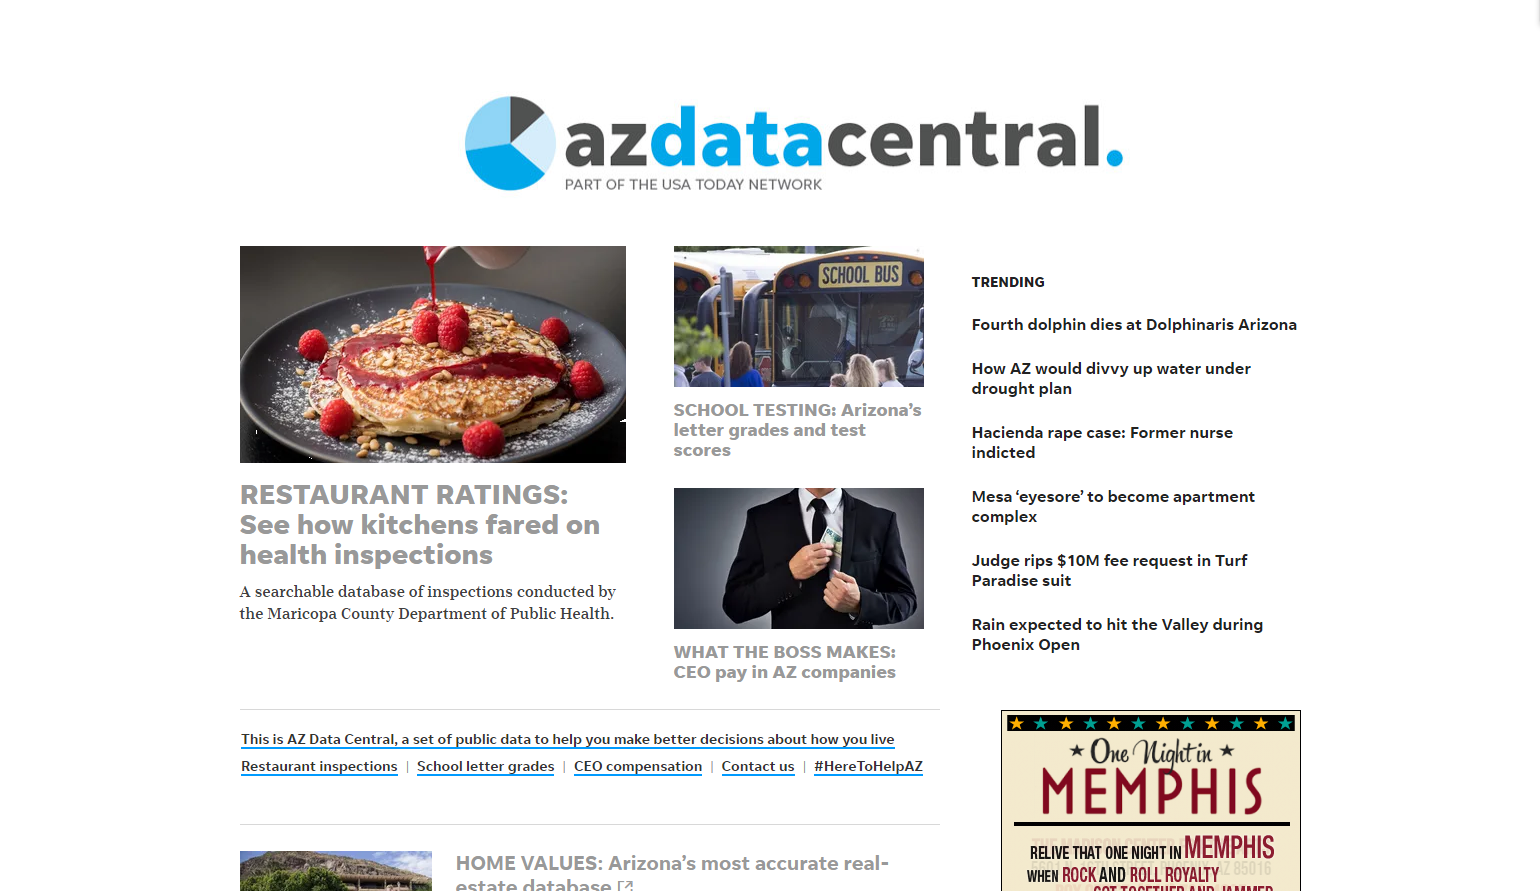 AZ Data Central: A wealth of information to help you make better decisions about life